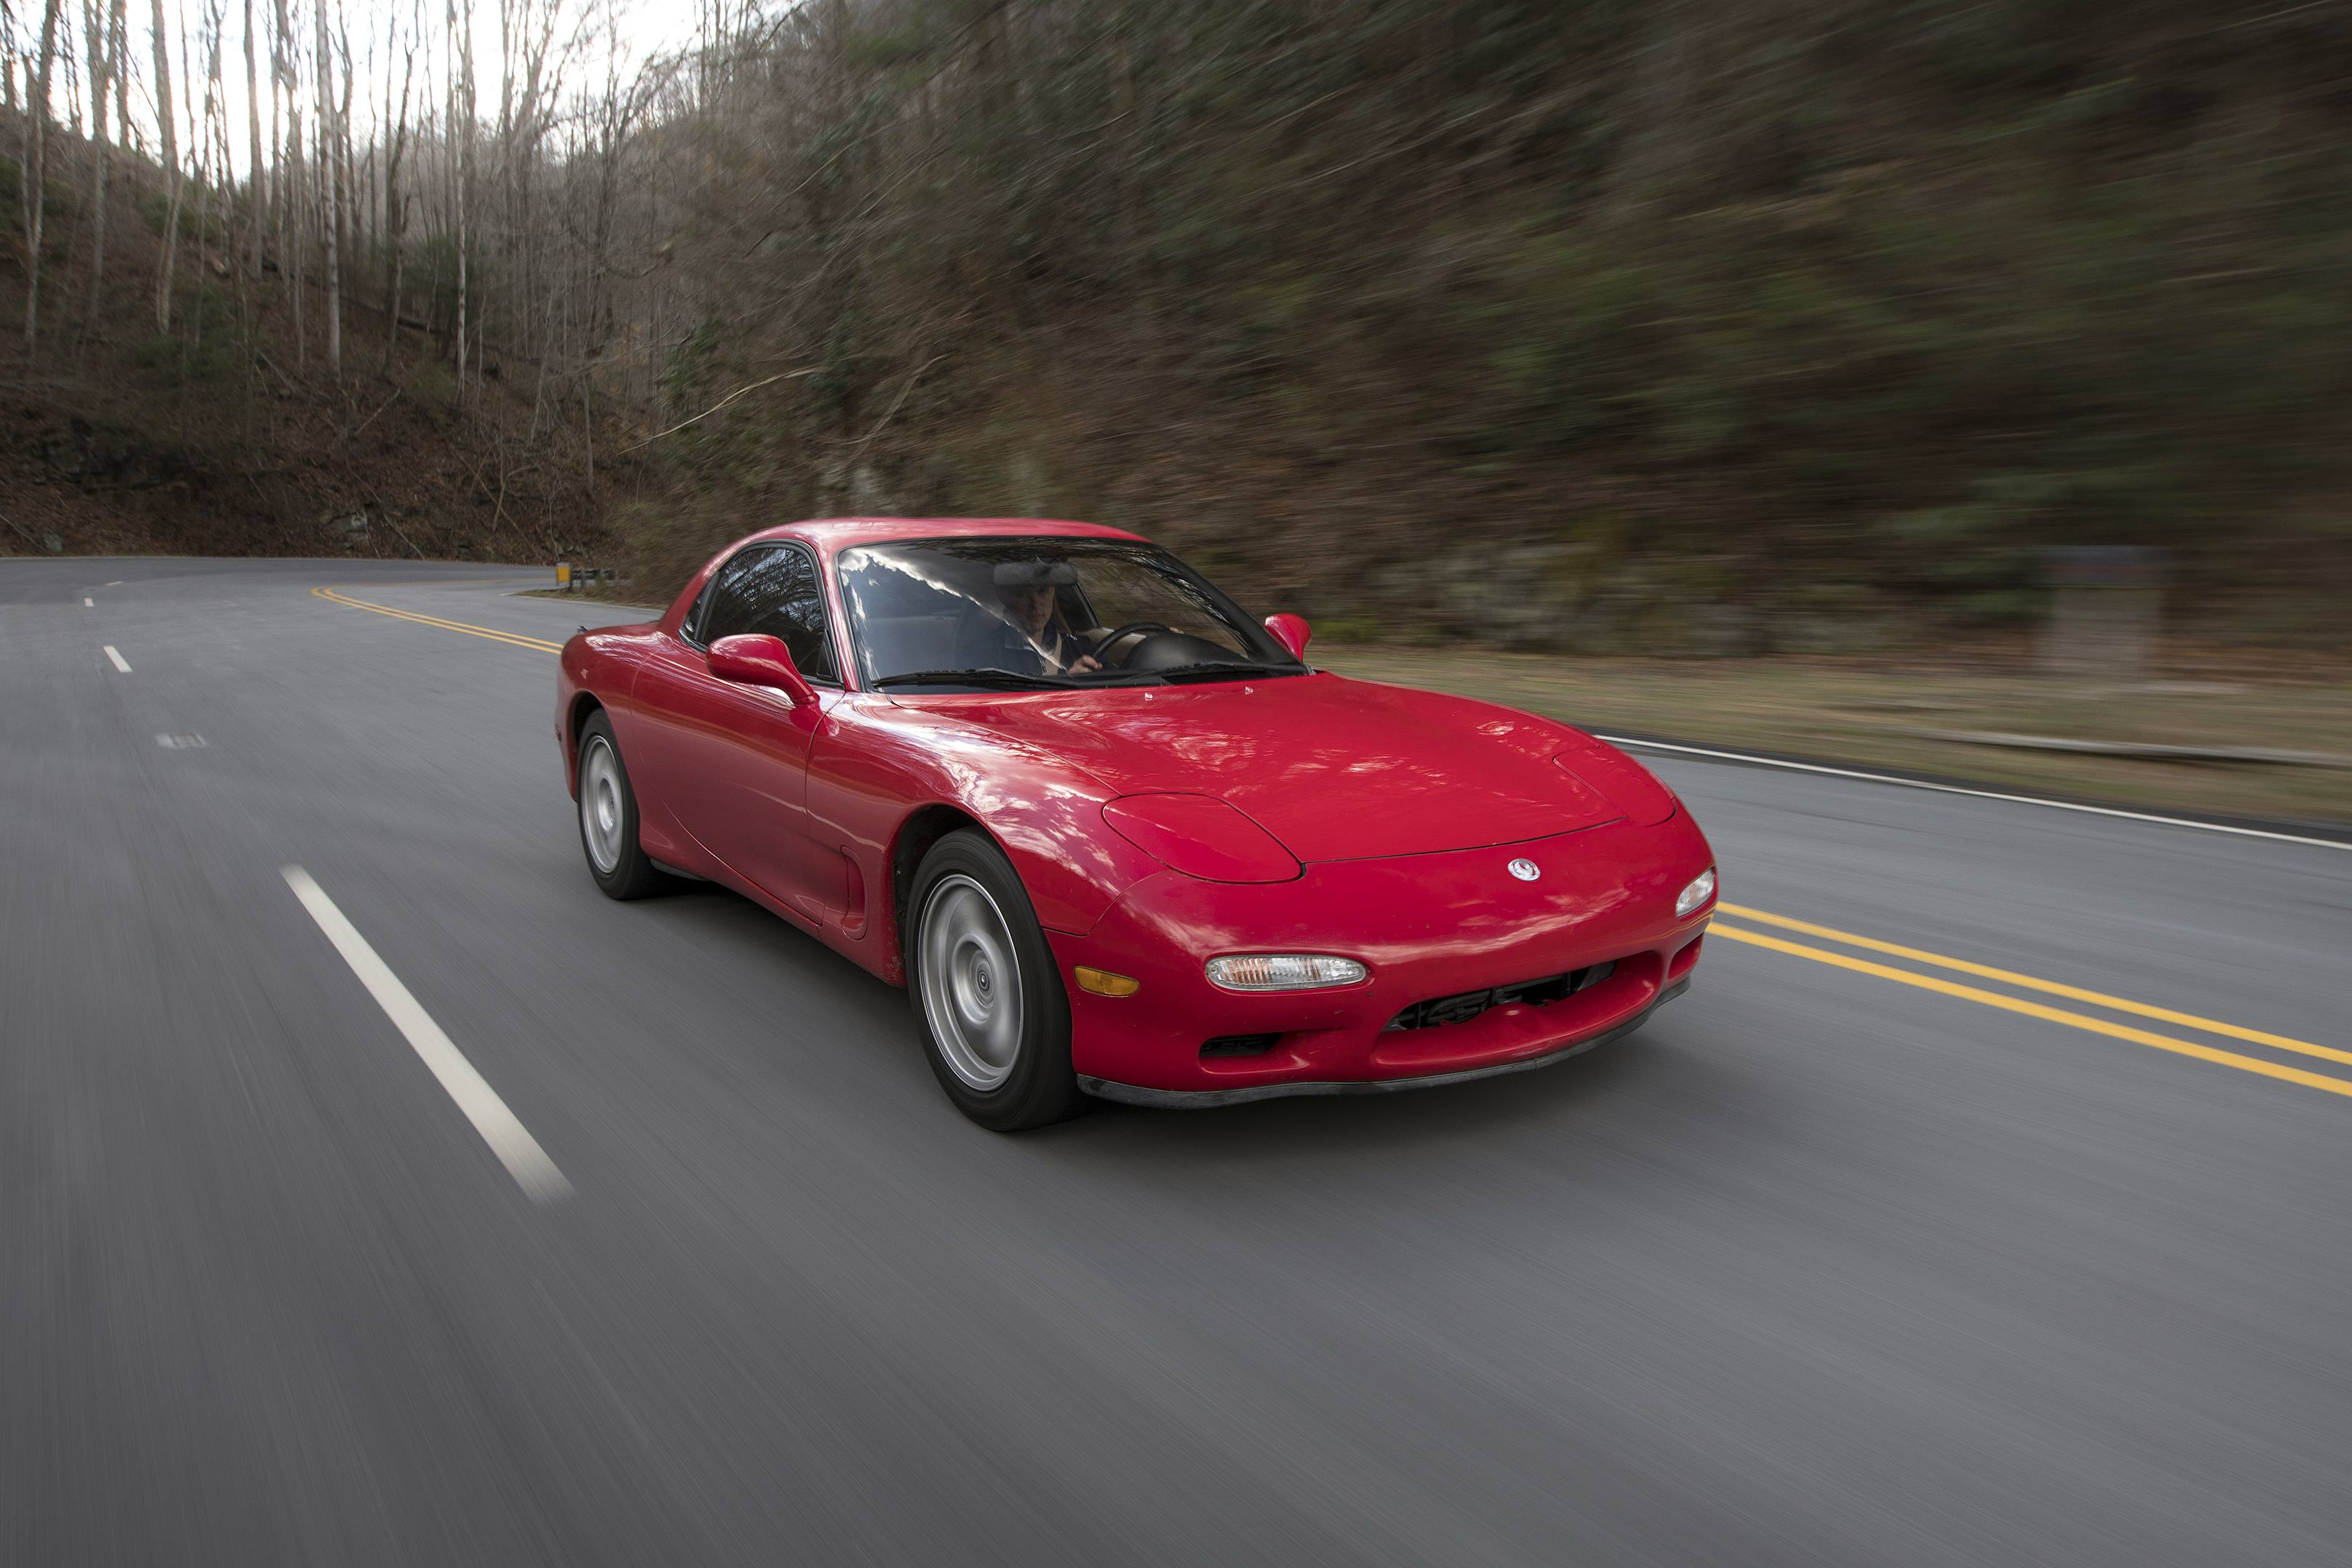 1993 Mazda RX-7 high front 3/4